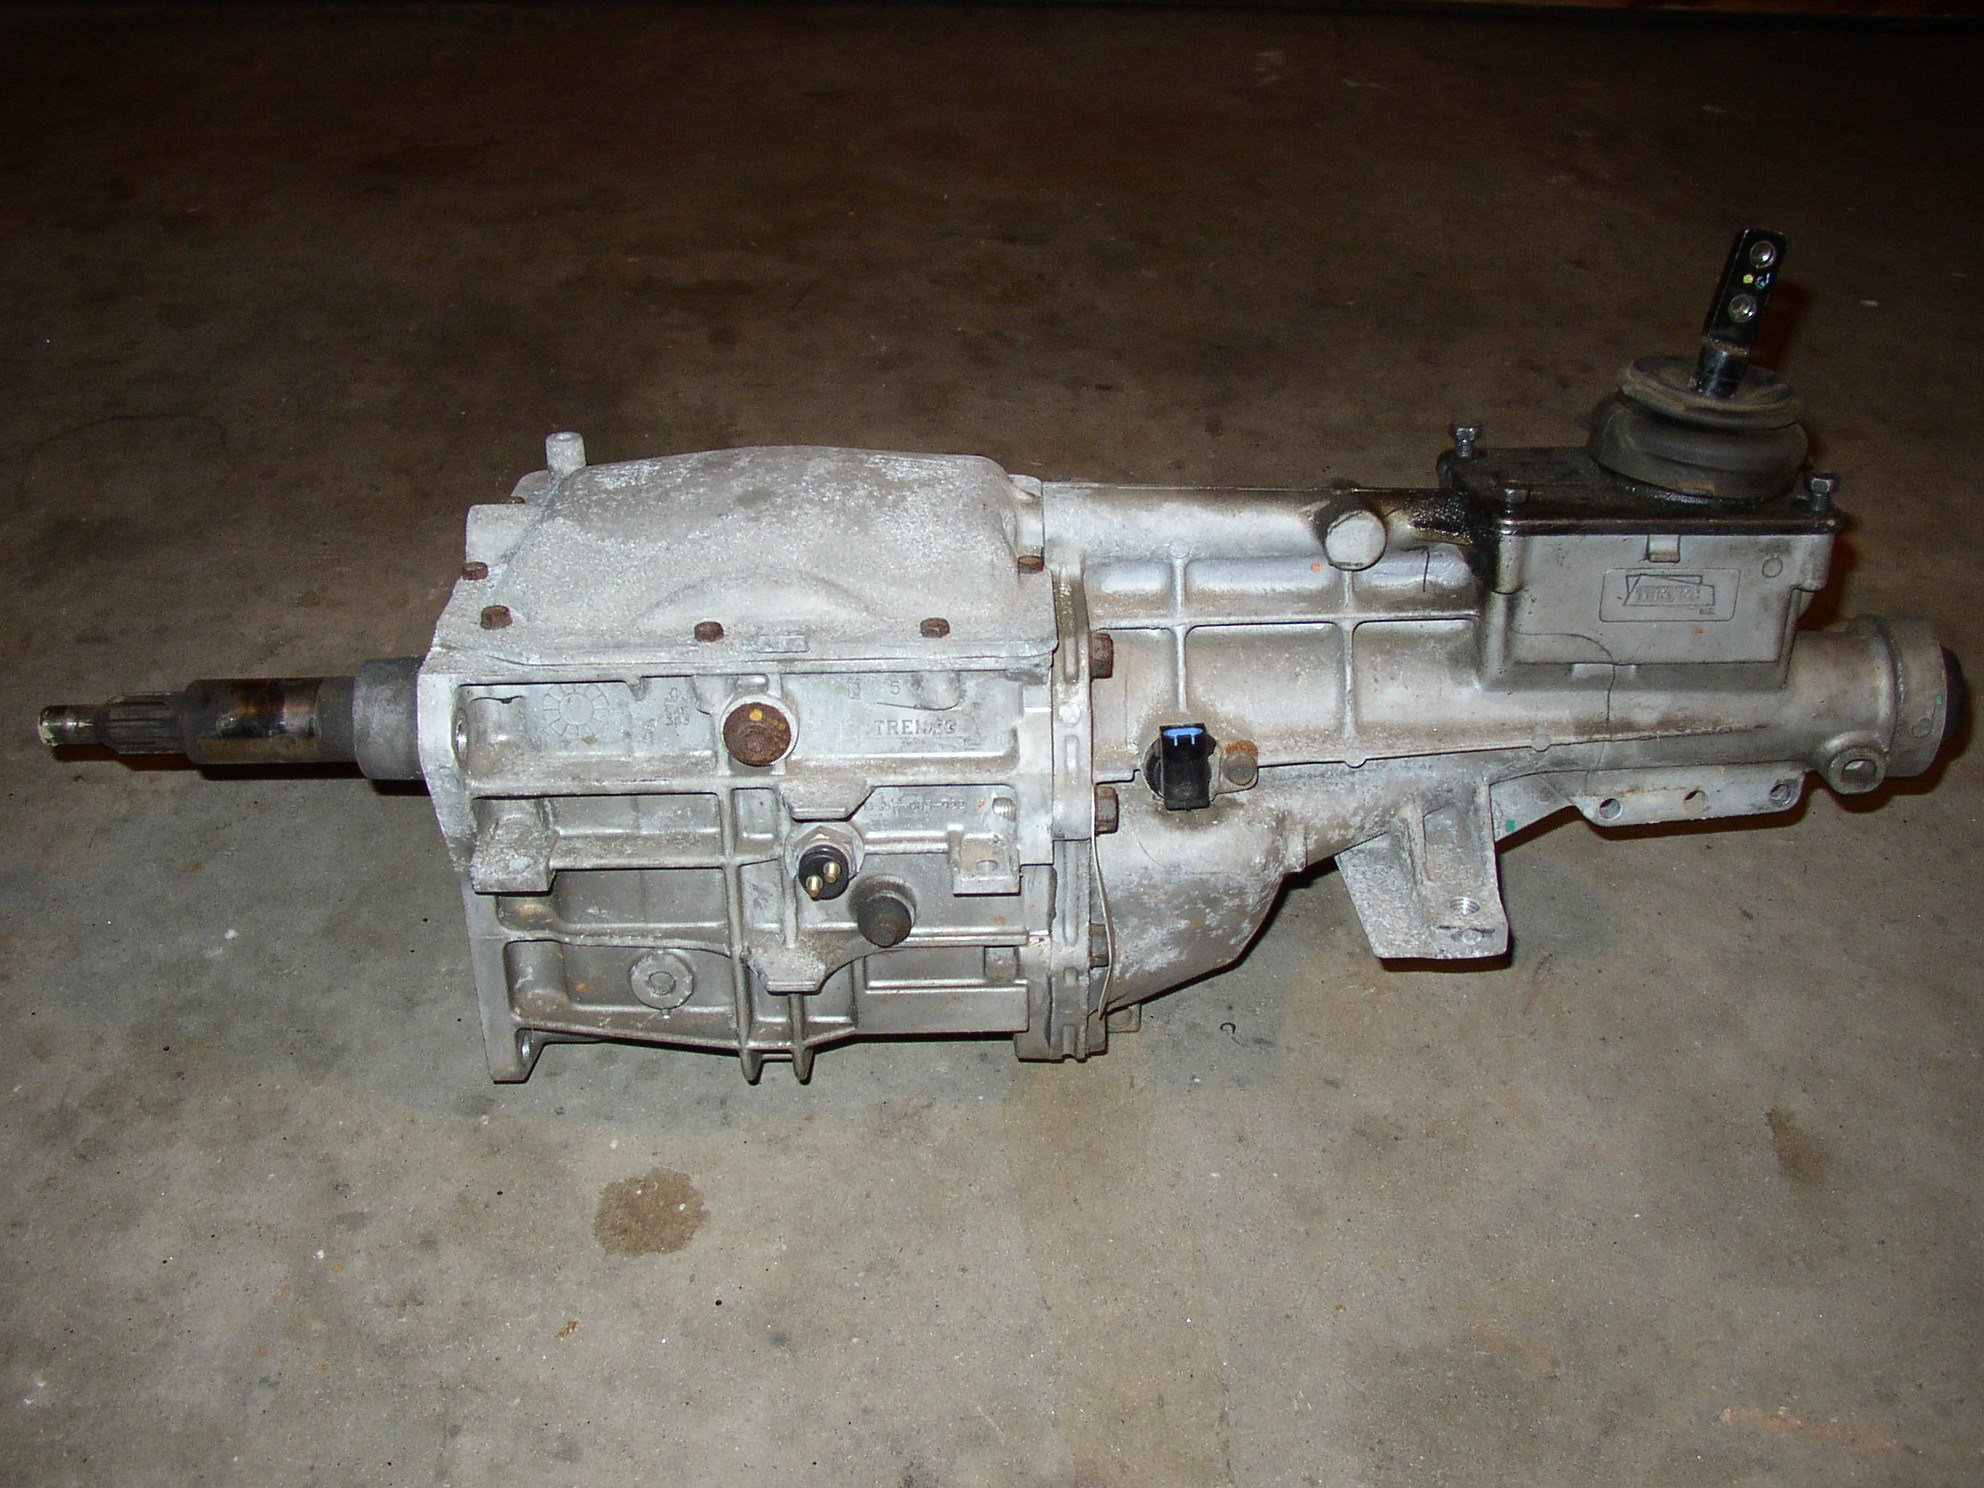 88710d1264294947 2000 mustang 3 8l automatic manual transmission swap p1040813 2000 mustang 3 8l, automatic to manual transmission swap ford  at creativeand.co